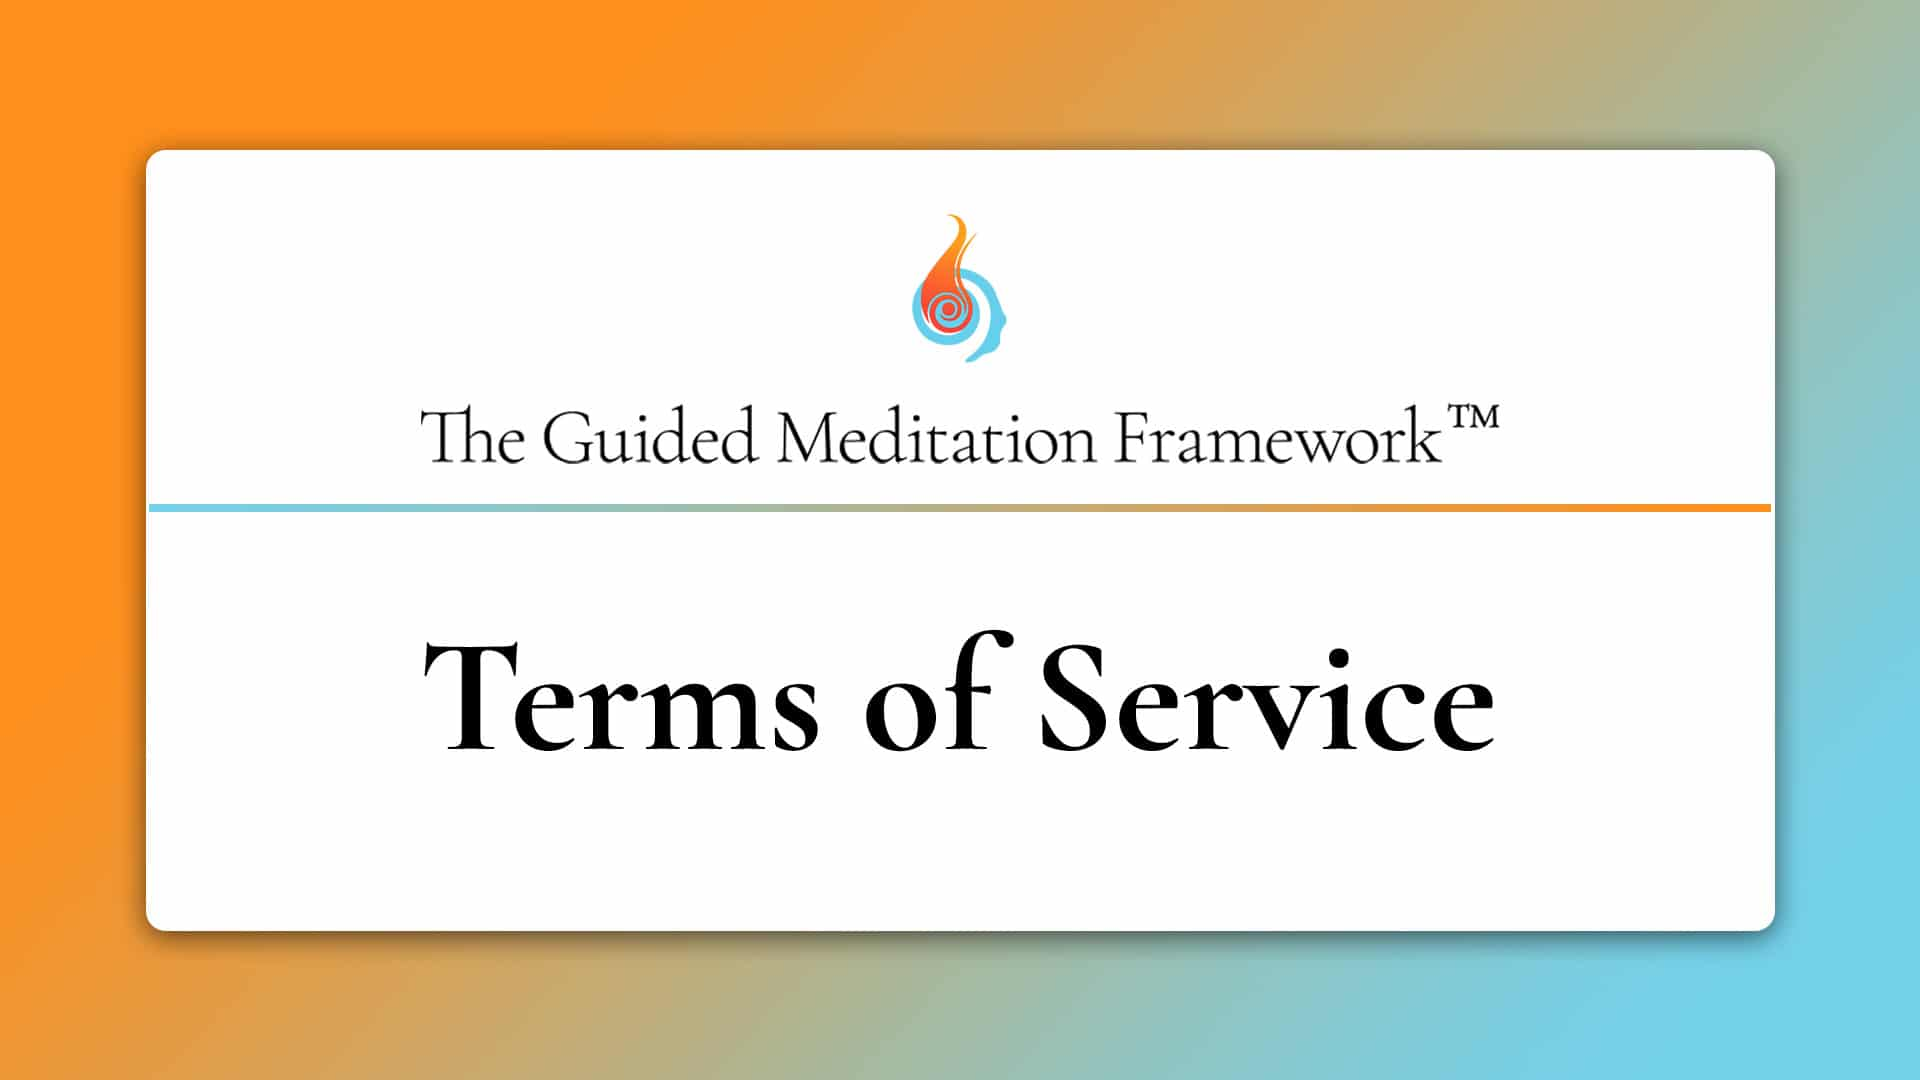 The Guided Meditation Framework terms of service